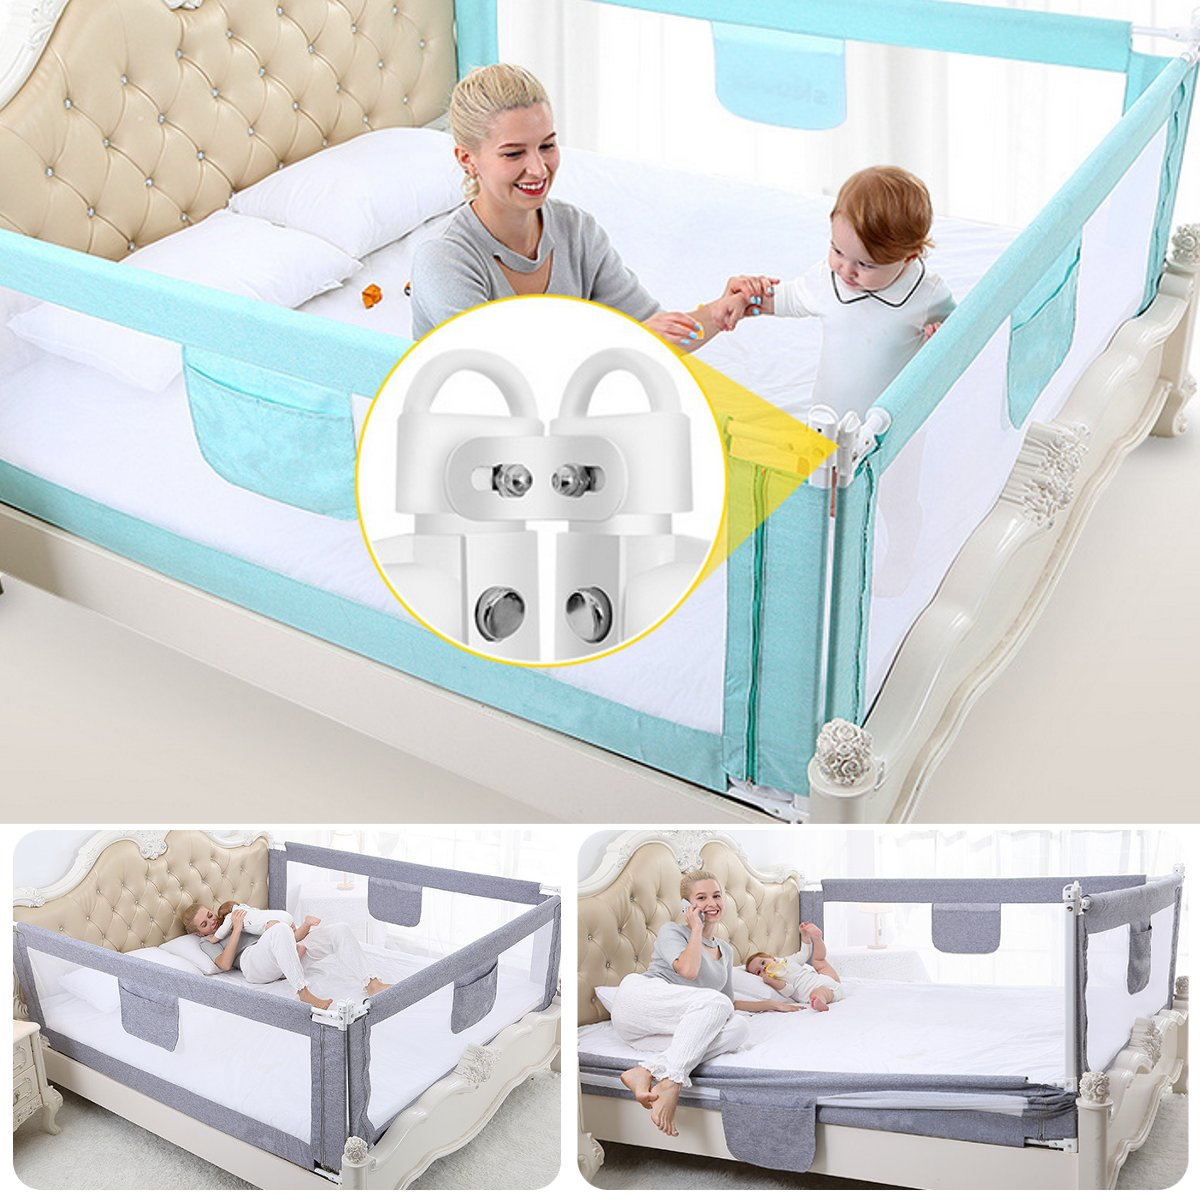 2M Baby Bed Fence for Child Safety used as Baby Gate from Falling Accidentally while Sleeping or Playing 19